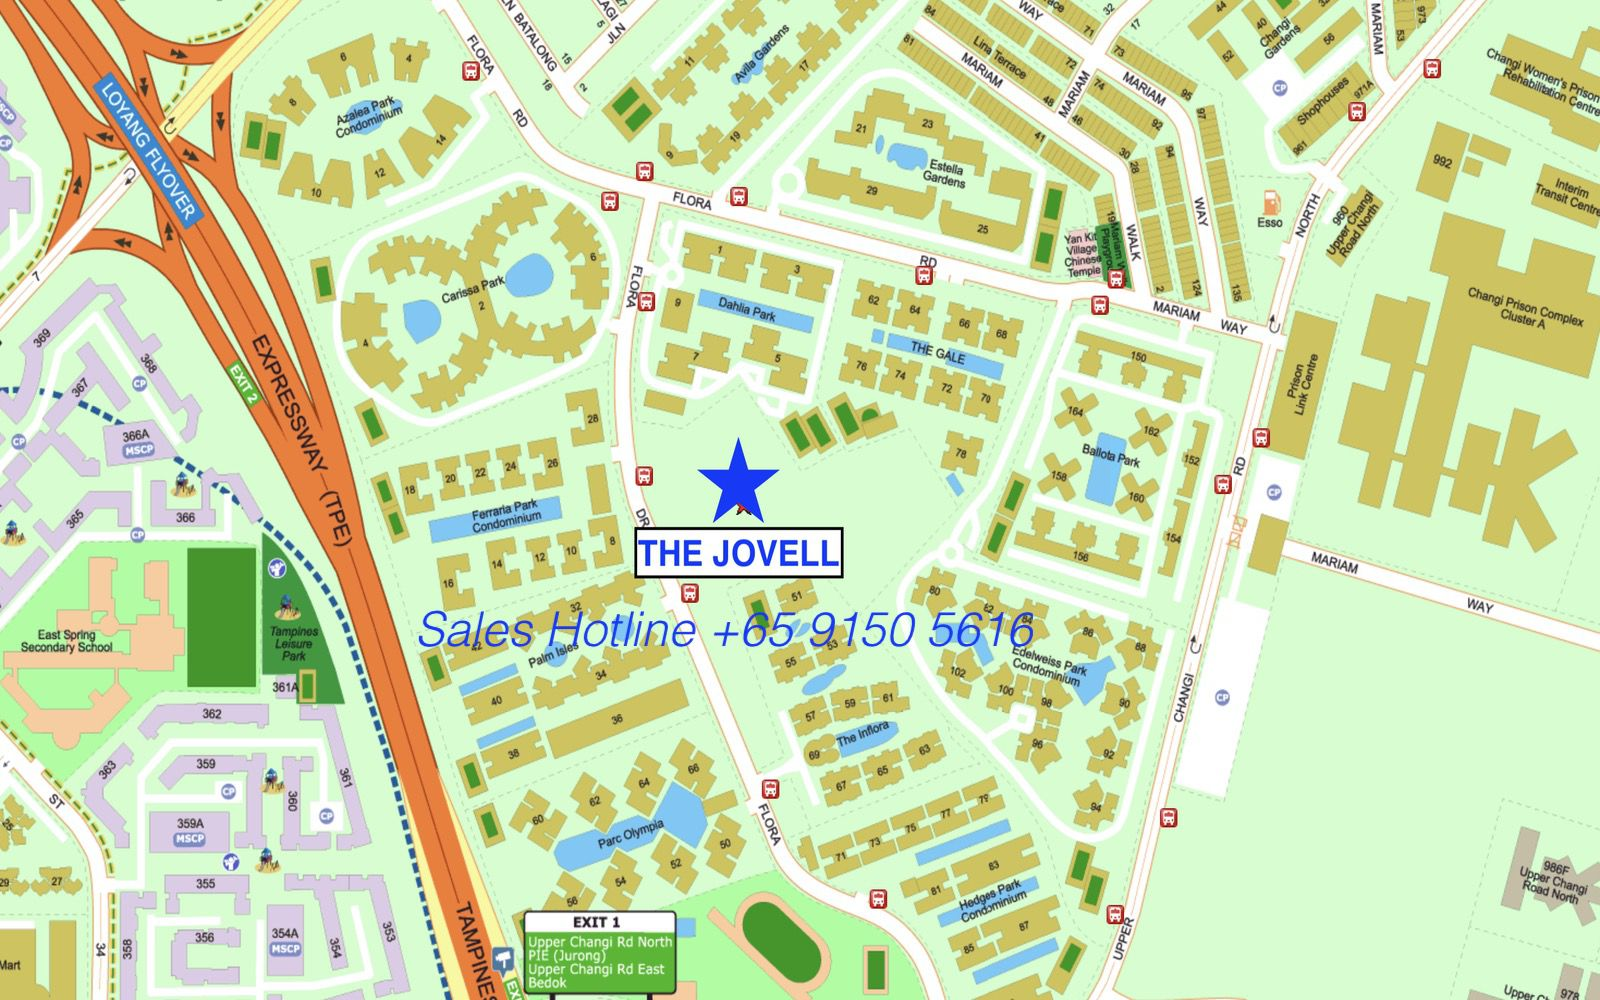 The Jovell Condo - Location Map